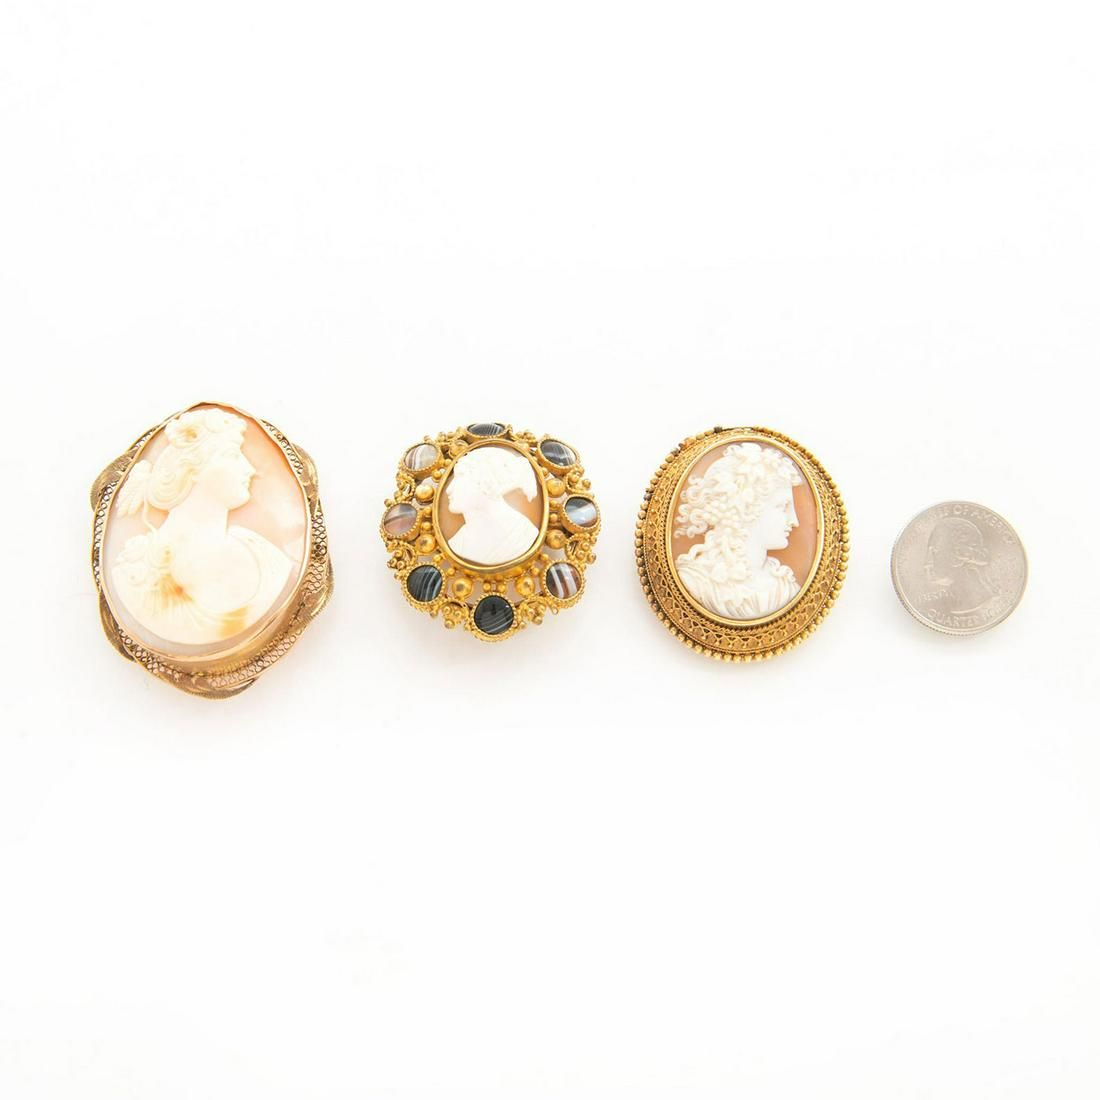 THREE 19TH CENTURY VICTORIAN JEWELRY CAMEO BROOCH PINS